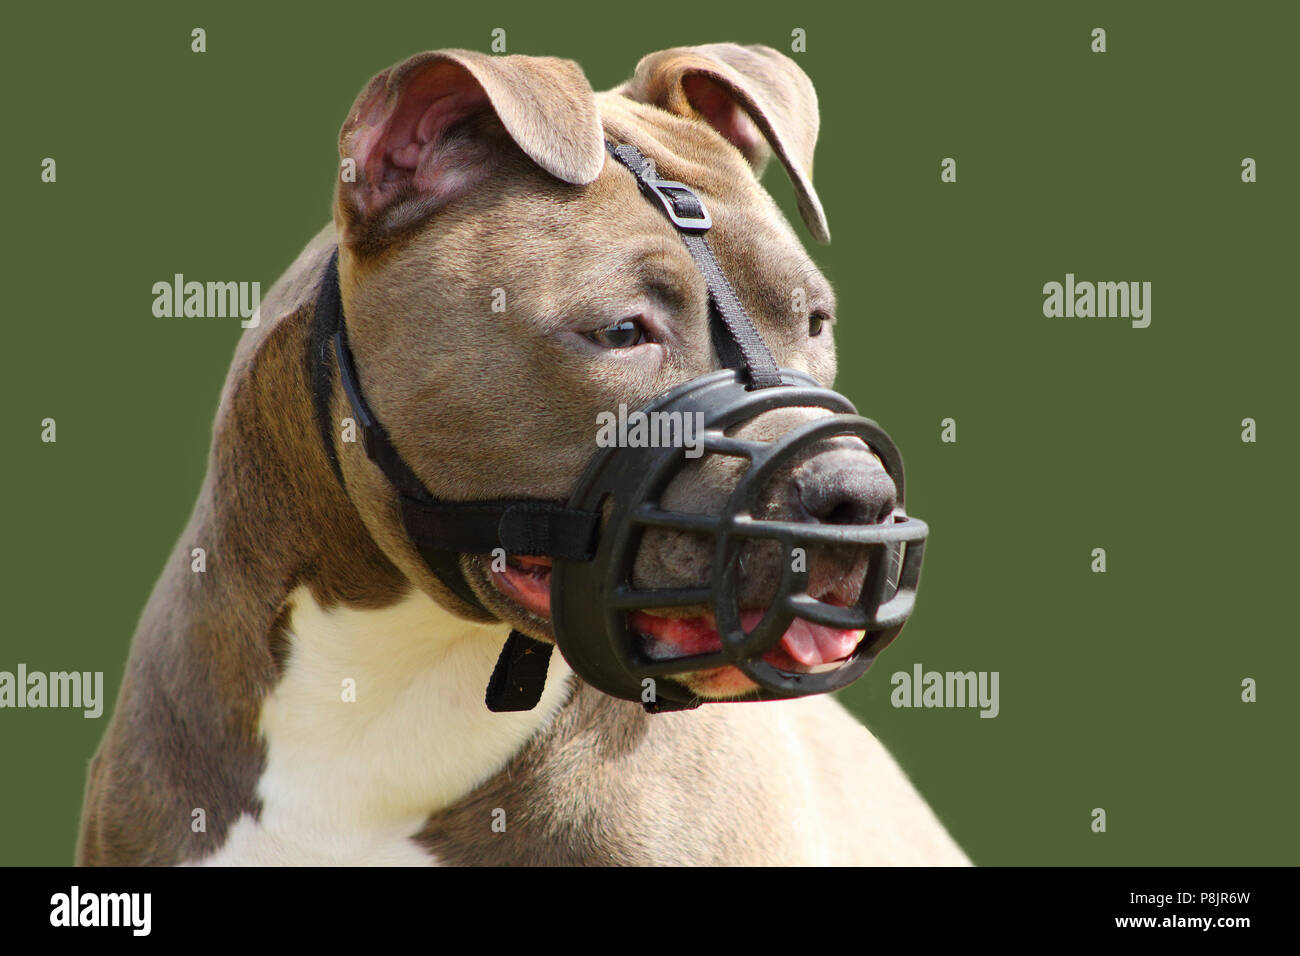 face of an american staffordshire terrier dog with muzzle - Stock Image